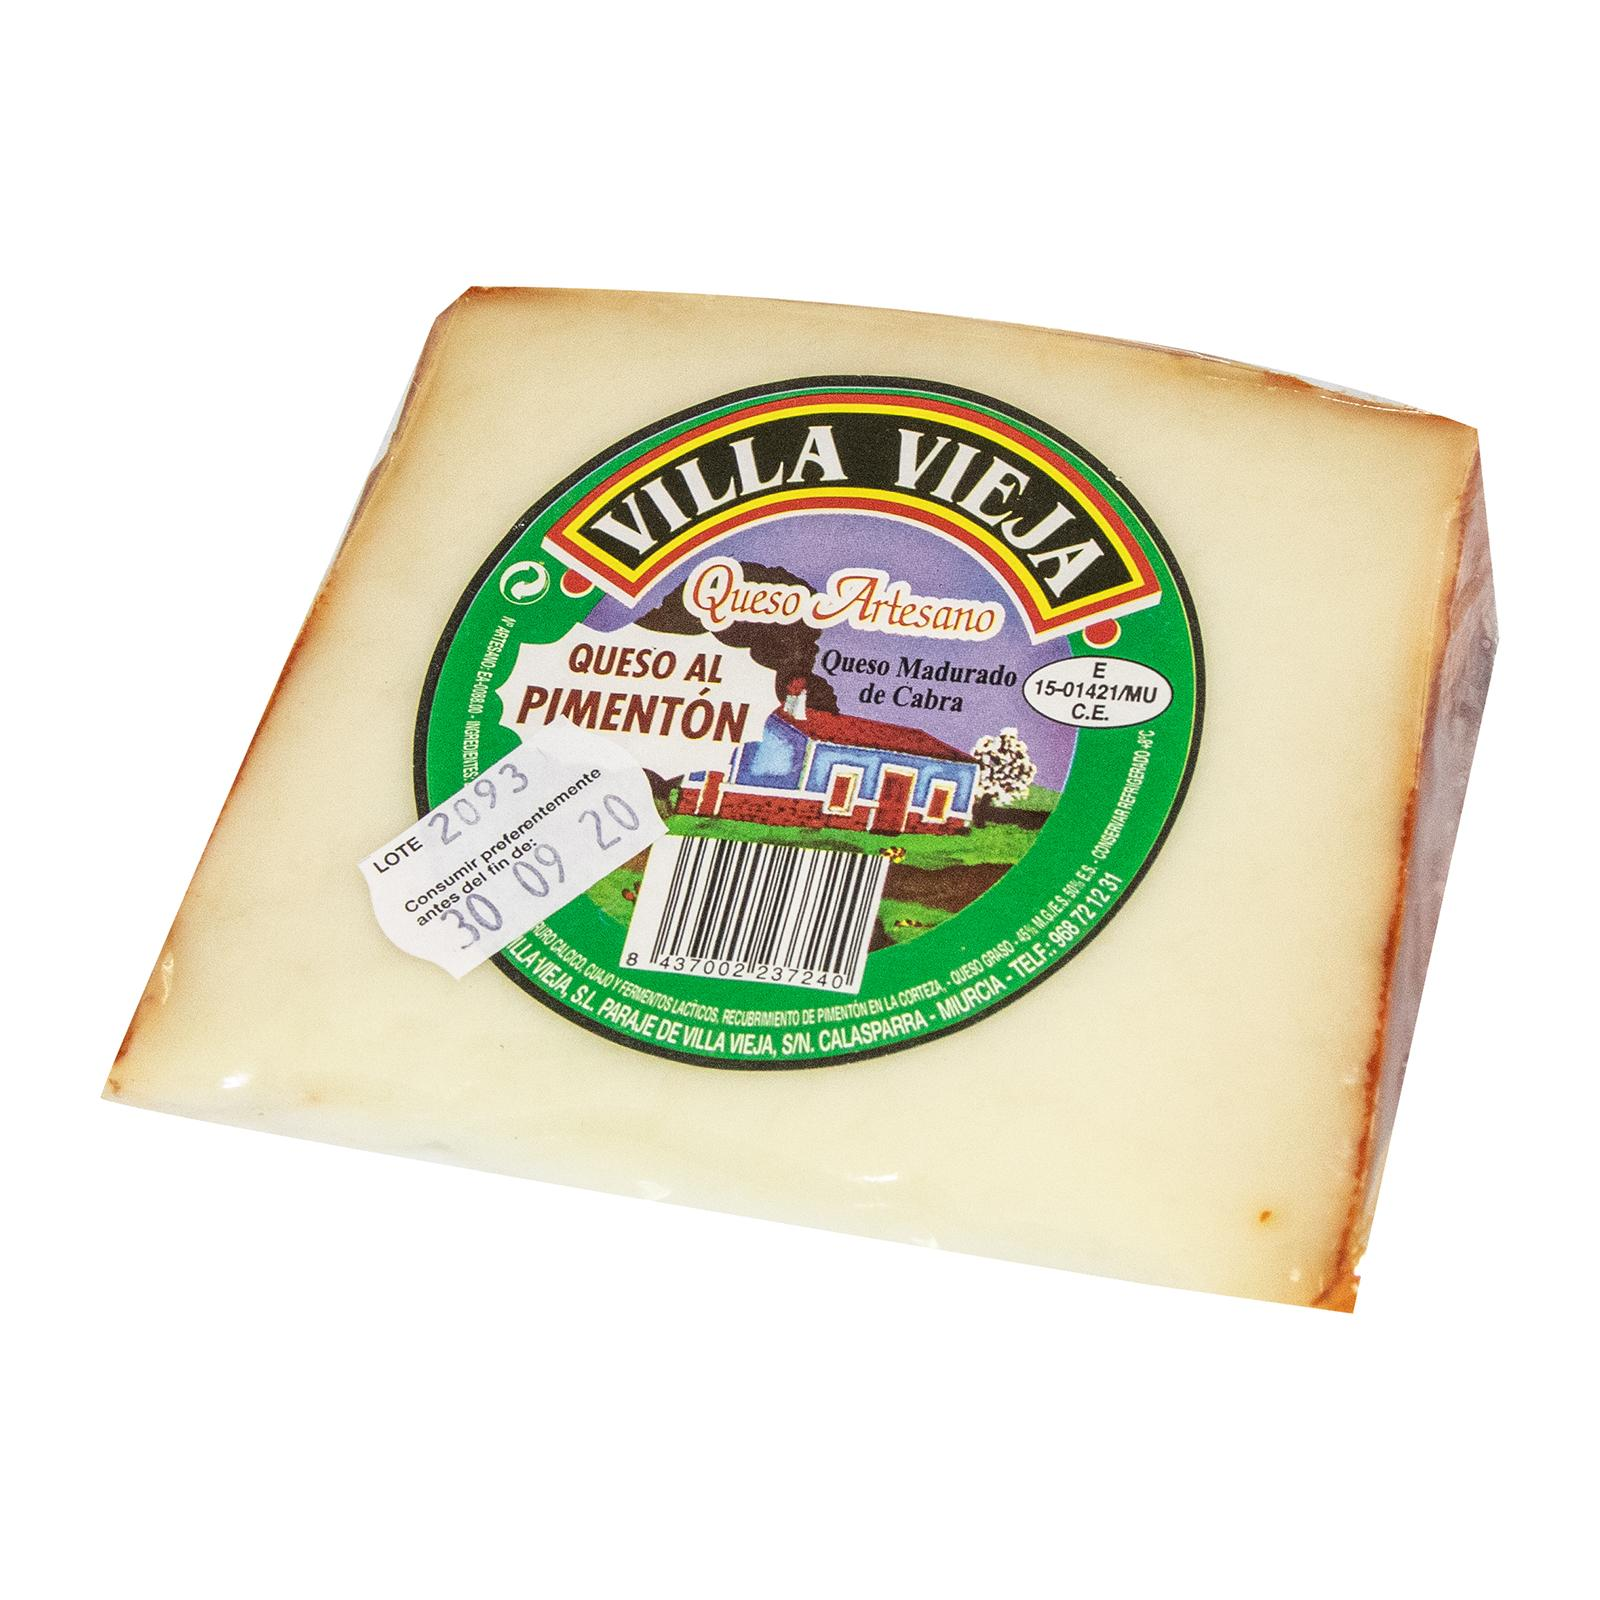 Bonvallis Spanish Cheese Villa Vieja Queso al Pimenton - Goat Cheese with Paprika